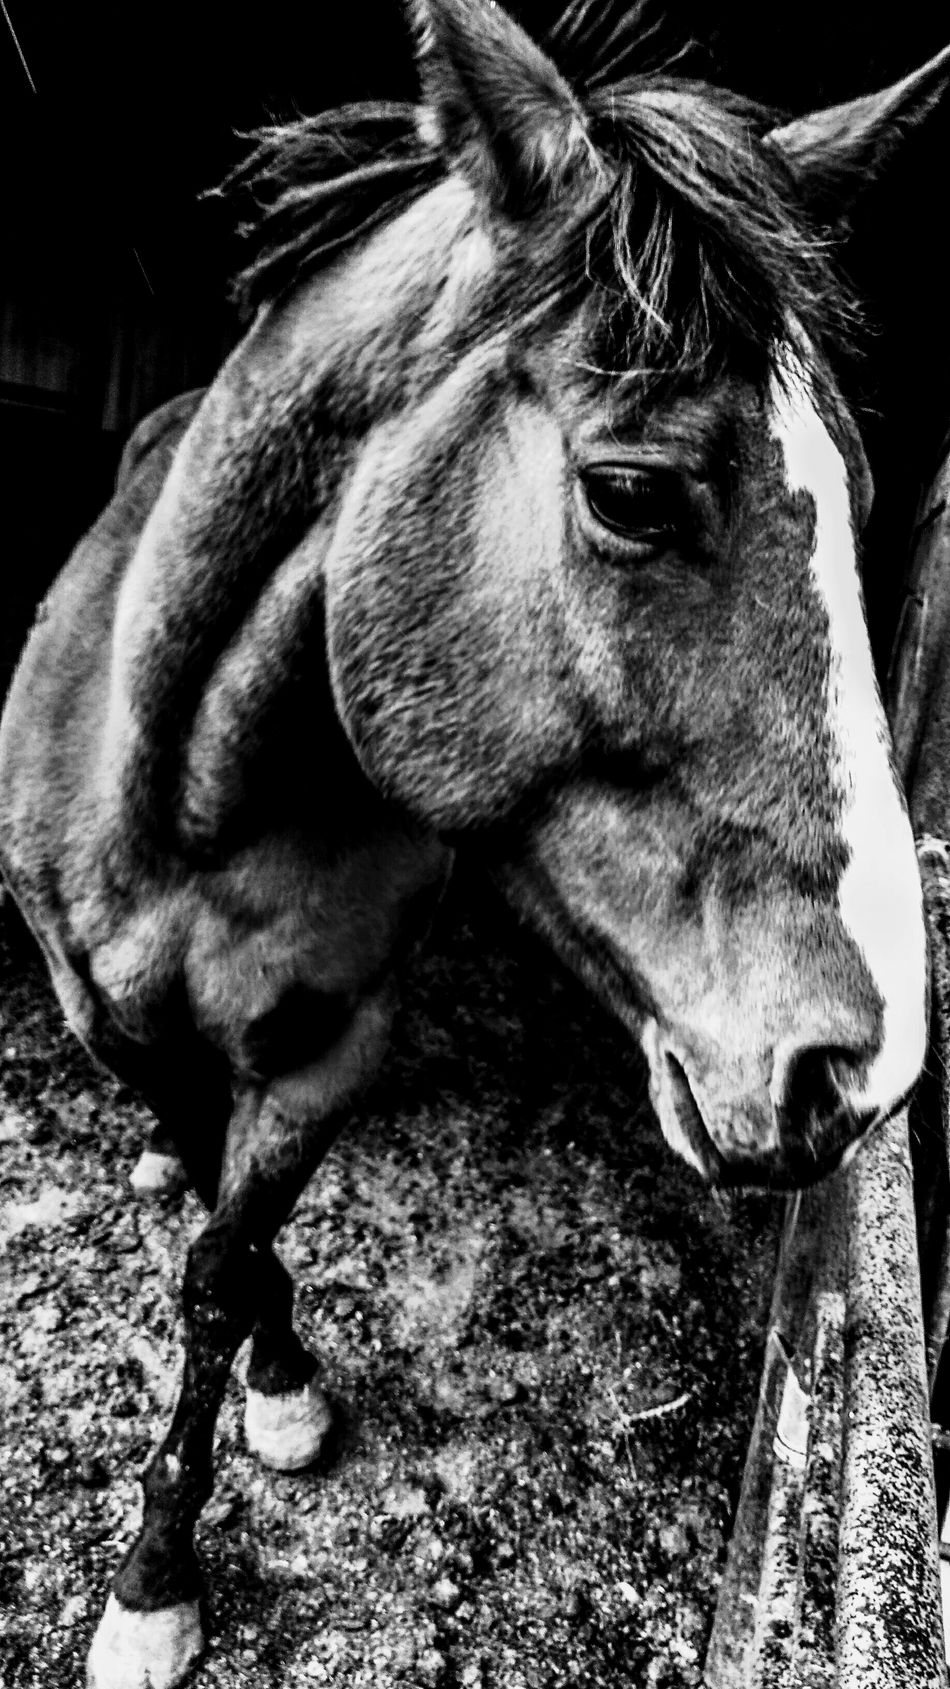 Ranch horses Horse Domestic Animals Animal Themes One Animal Livestock Mammal Close-up No People Working Animal Day Nature Outdoors Farm Ranch Country Living Silhouette Pasture, Paddock, Grassland, Pastureland Filly Barn Stable Paddock Cowboy Ranch Life Country Life Animal Head